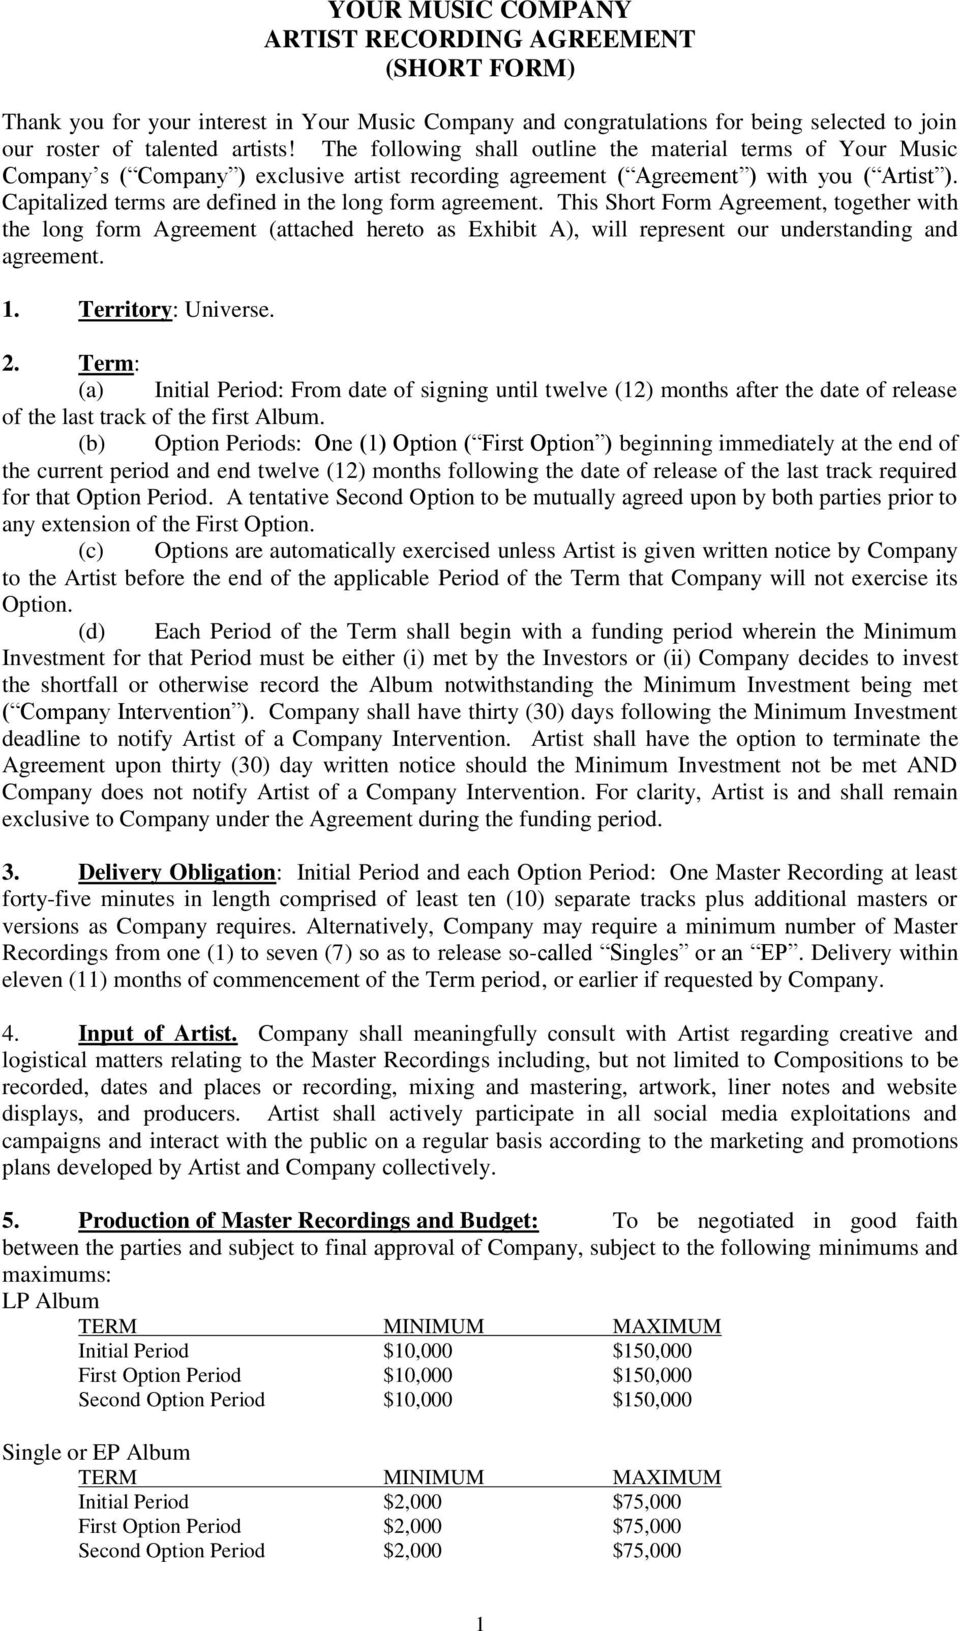 YOUR MUSIC COMPANY ARTIST RECORDING AGREEMENT (SHORT FORM) - PDF